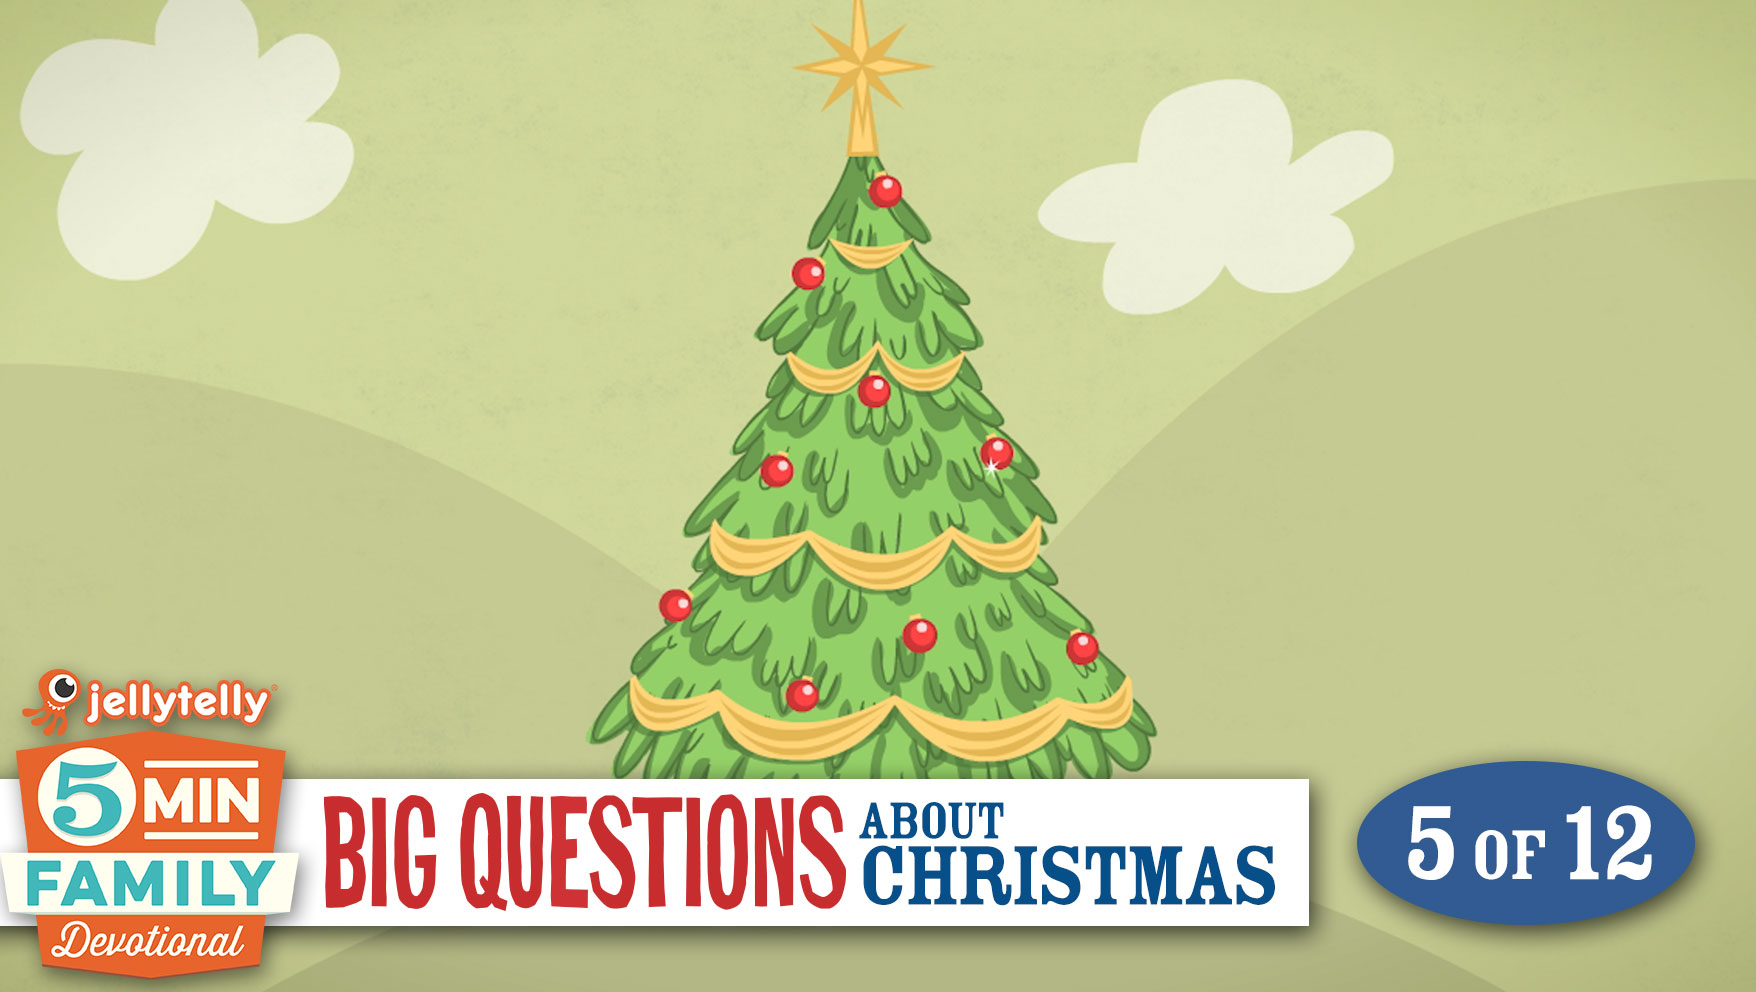 Why Do We Have Christmas Trees? - Christmas 5 Minute Family Devotional